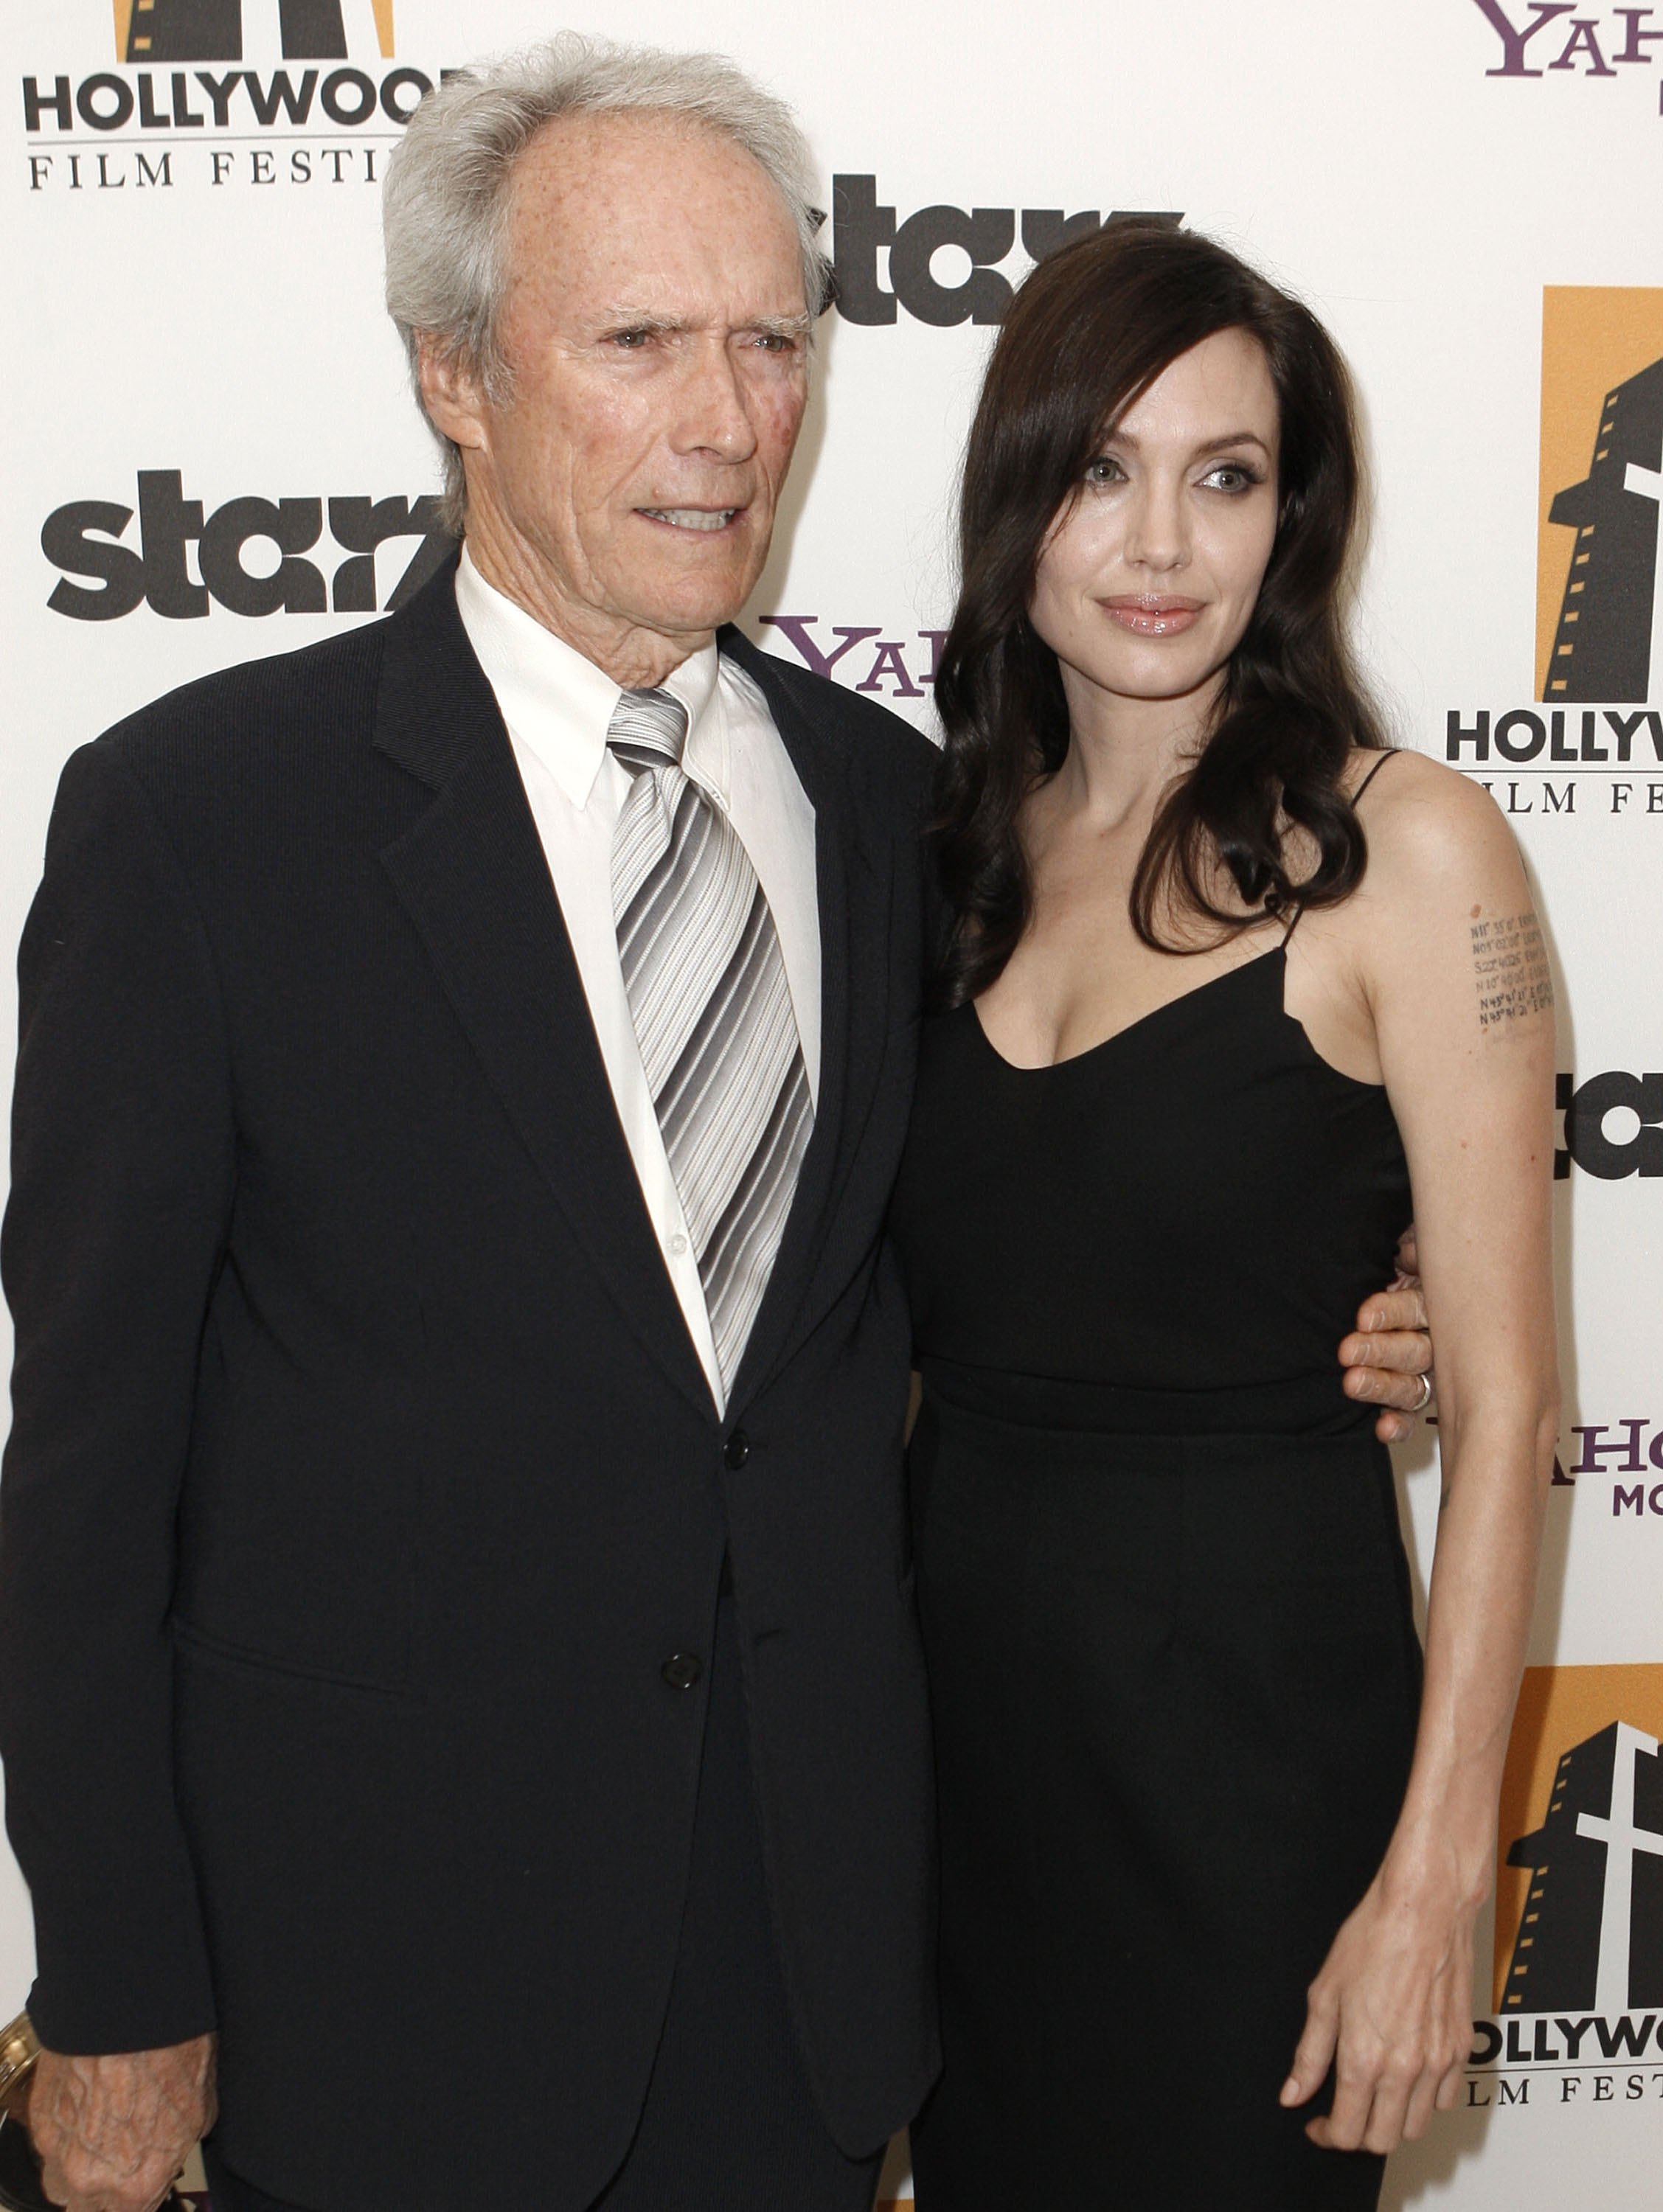 70203_Angelina_Jolie_and_Clint_Eastwood_-_backstage_at_the_Hollywood_Awards_Gala_CU_ISA_004_122_1077lo.jpg